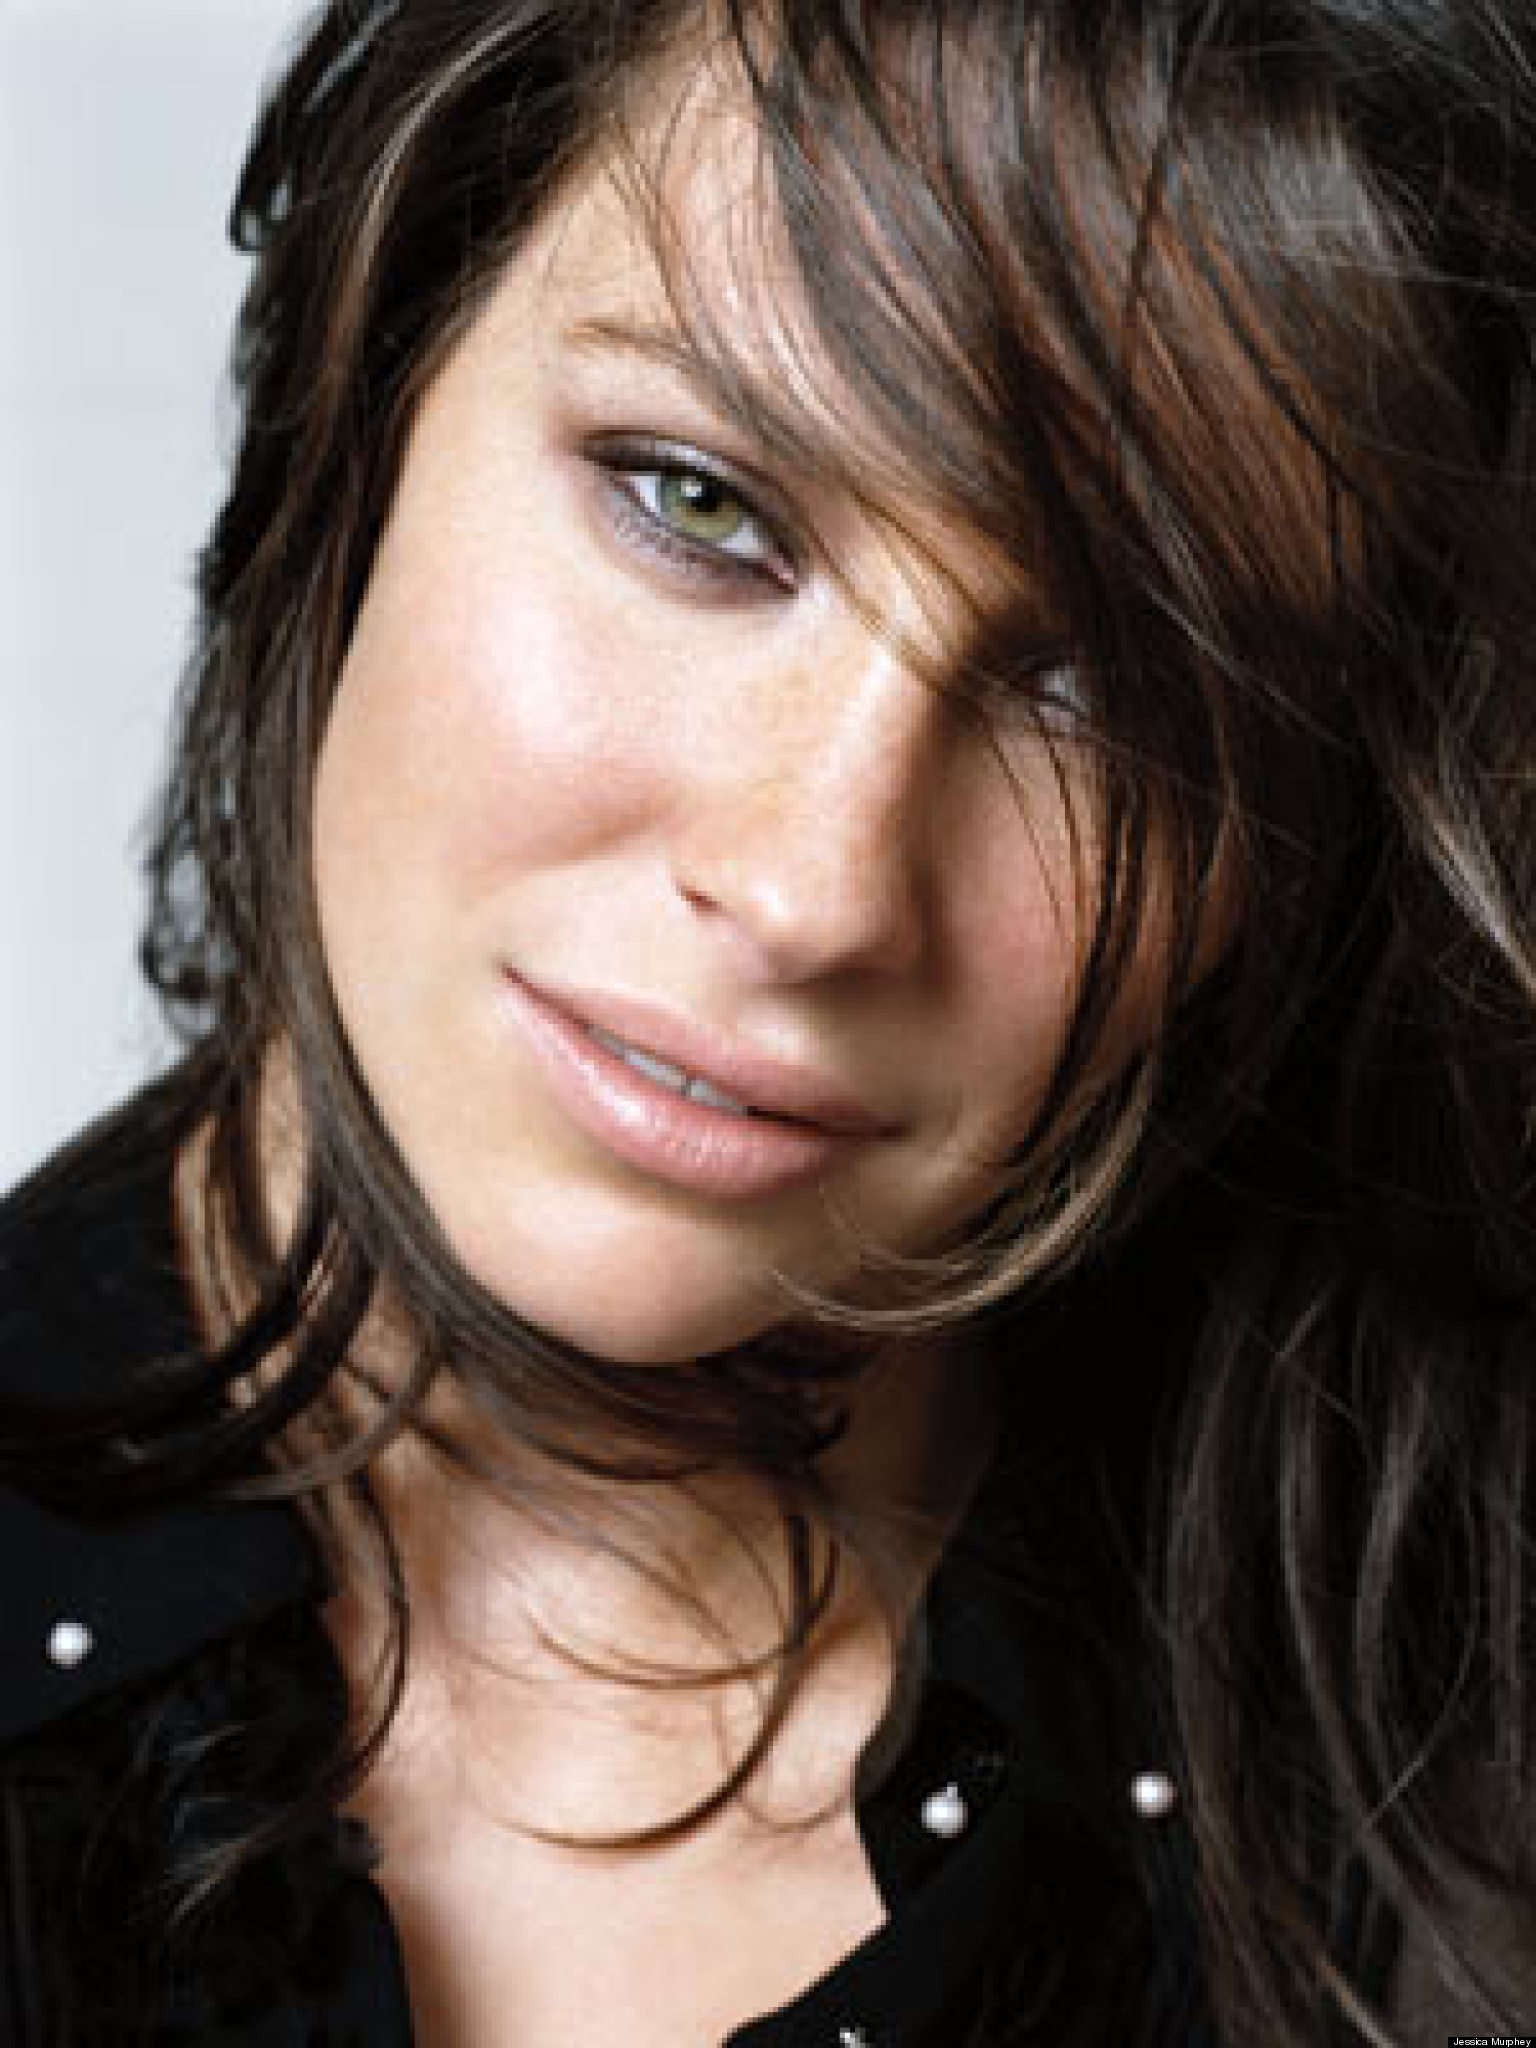 evangeline lilly gifevangeline lilly 2016, evangeline lilly 2017, evangeline lilly lost, evangeline lilly gif, evangeline lilly photoshoots, evangeline lilly tumblr, evangeline lilly husband, evangeline lilly insta, evangeline lilly young, evangeline lilly net worth, evangeline lilly kate beckinsale, evangeline lilly 2014, evangeline lilly hq, evangeline lilly book, evangeline lilly magazine, evangeline lilly gallery, evangeline lilly kinopoisk, evangeline lilly lee pace, evangeline lilly official, evangeline lilly l'oreal